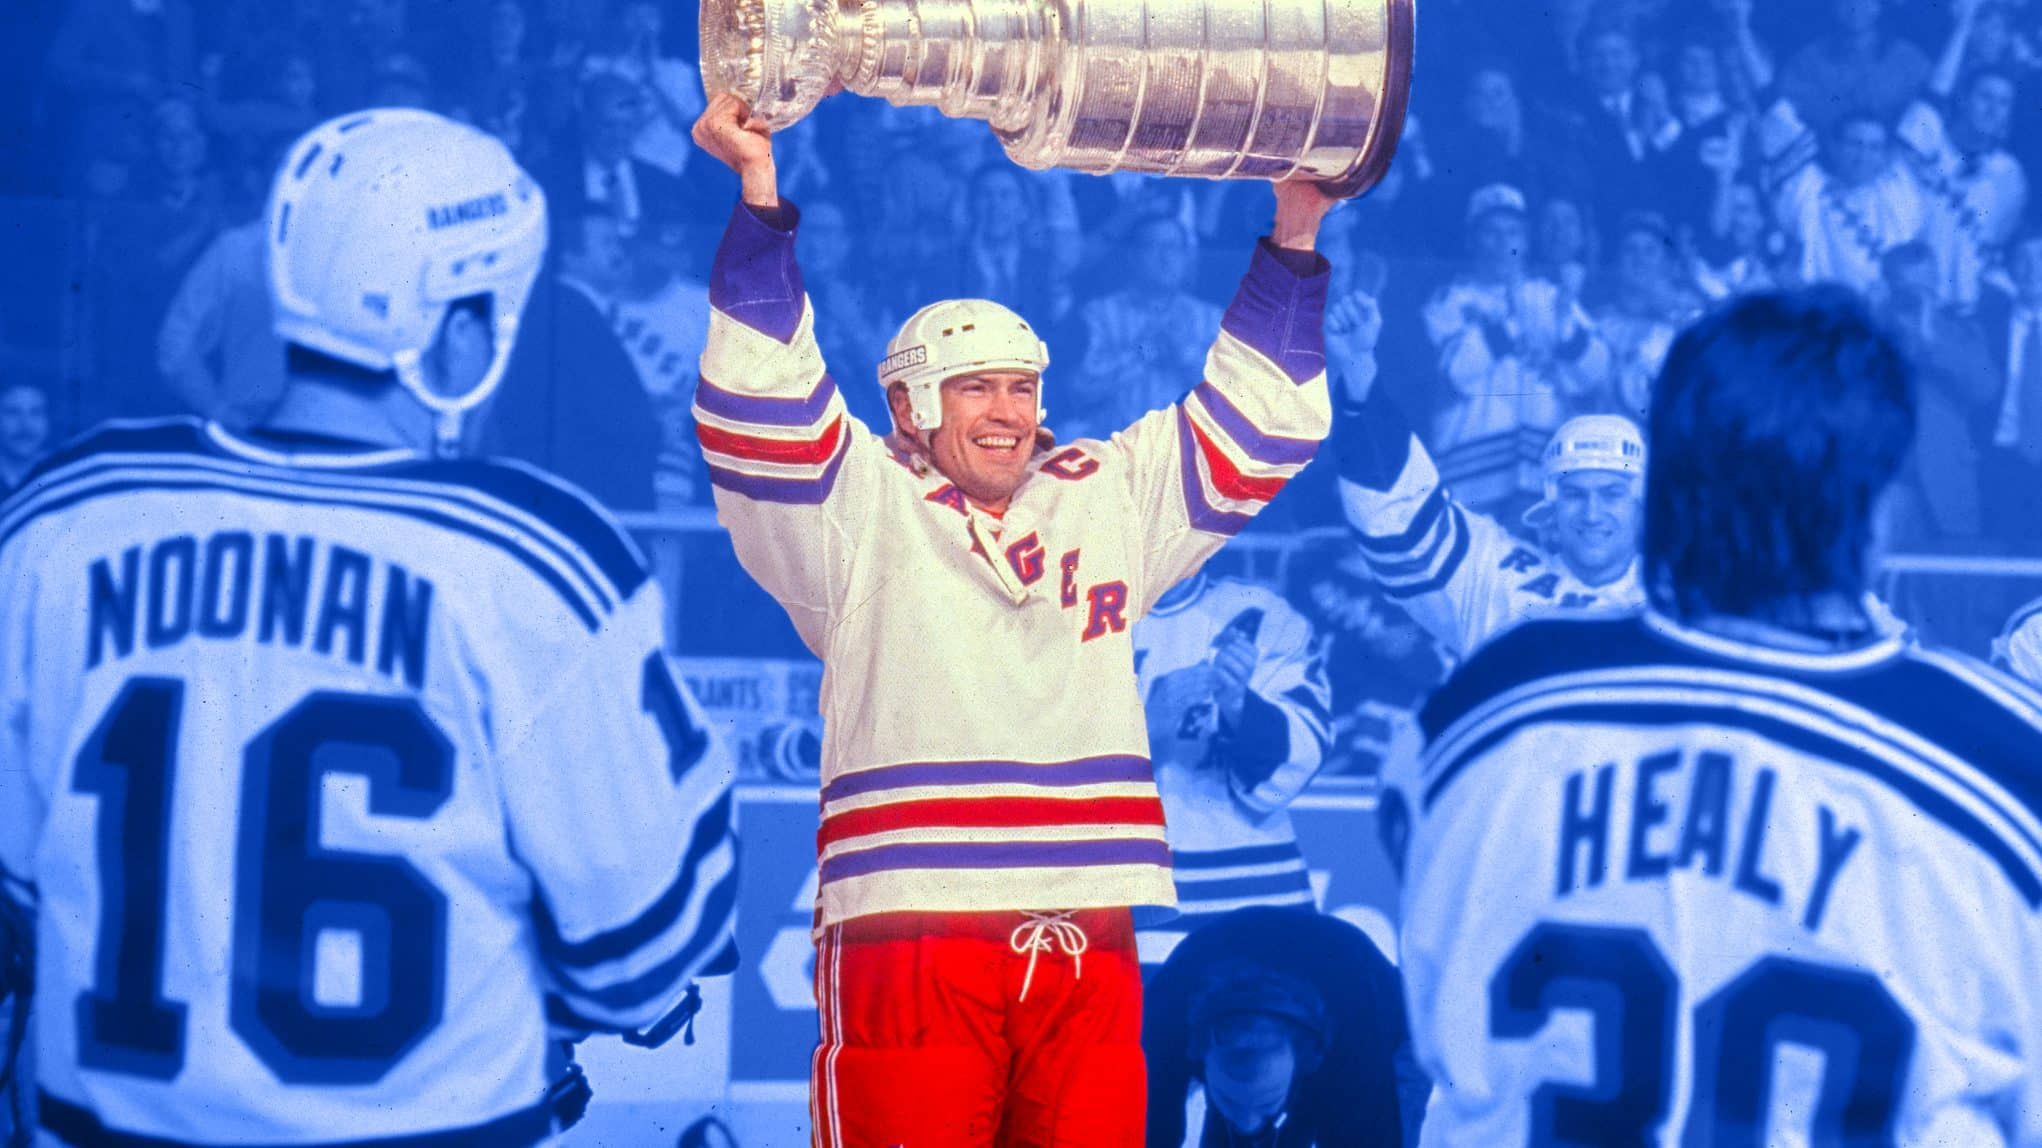 ... 1994 New York Rangers Stanley Cup. By. Frank Curto. -. 02 05 2019. Mark  Messier Getty Images 7e1f50a41